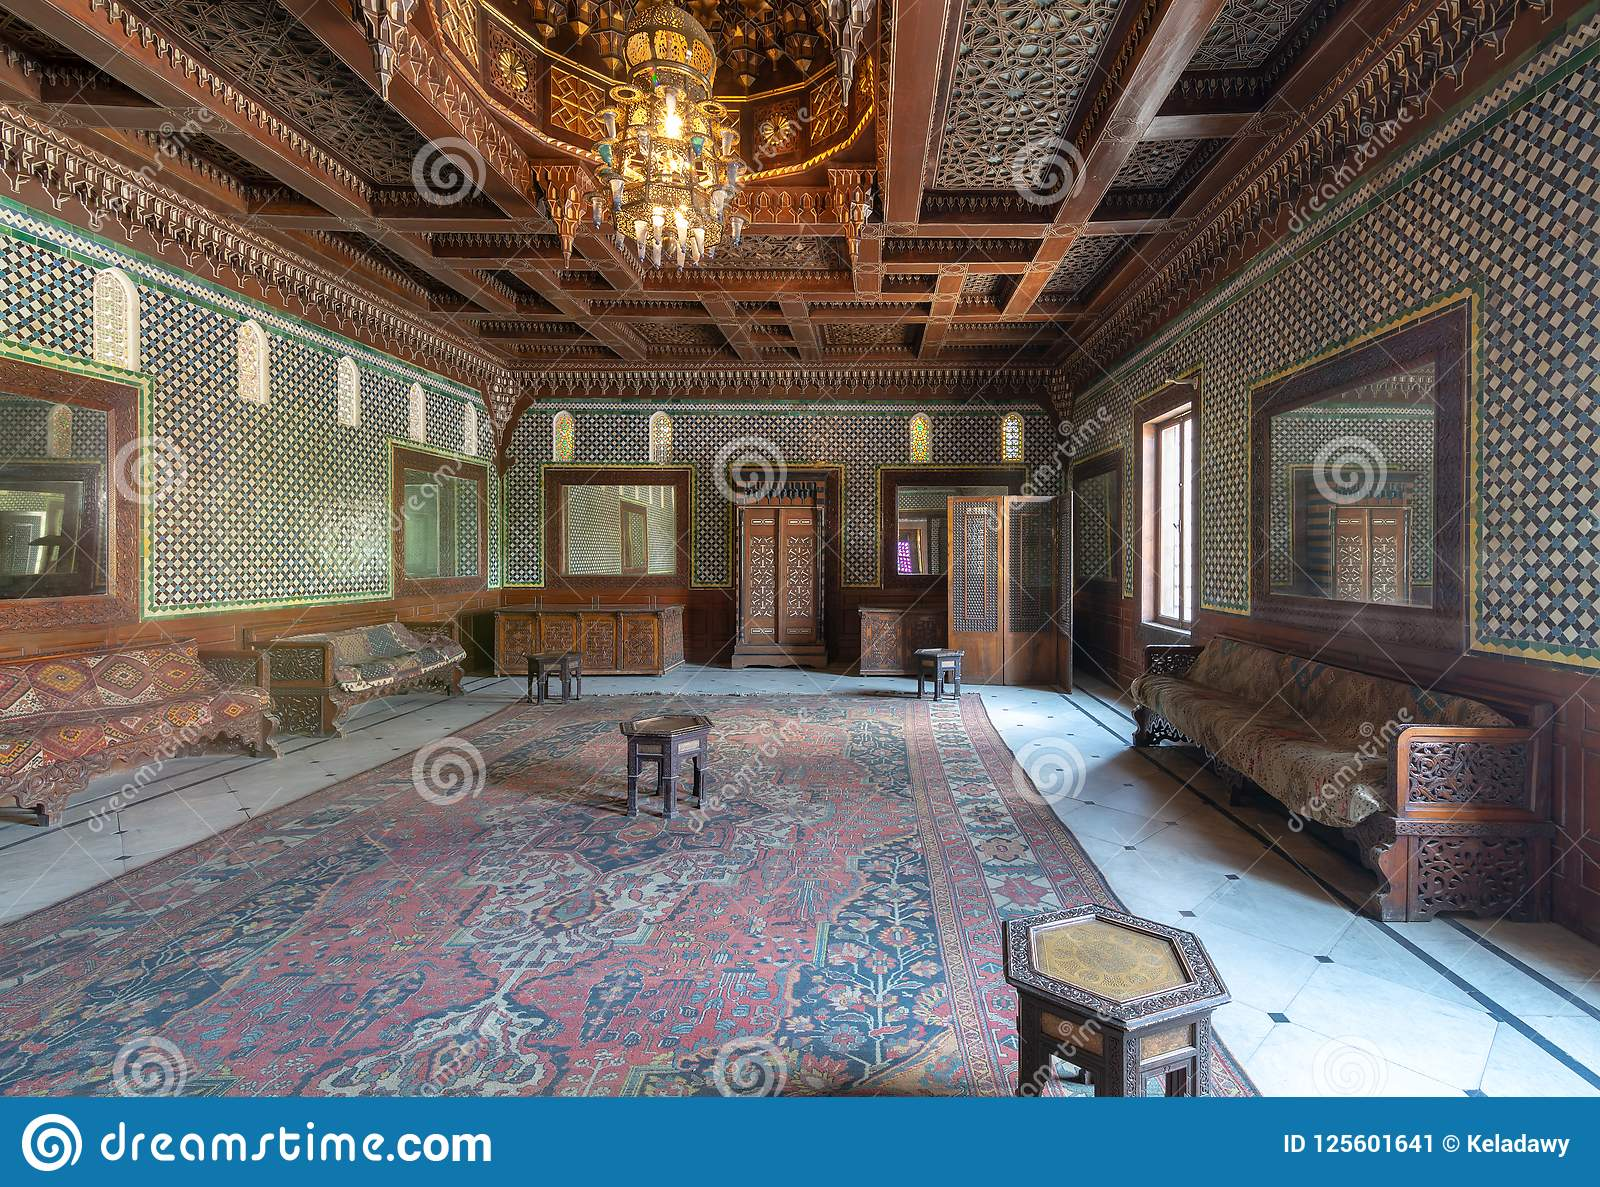 Manial Palace Of Prince Mohammed Ali Moroccan Hall With Blue